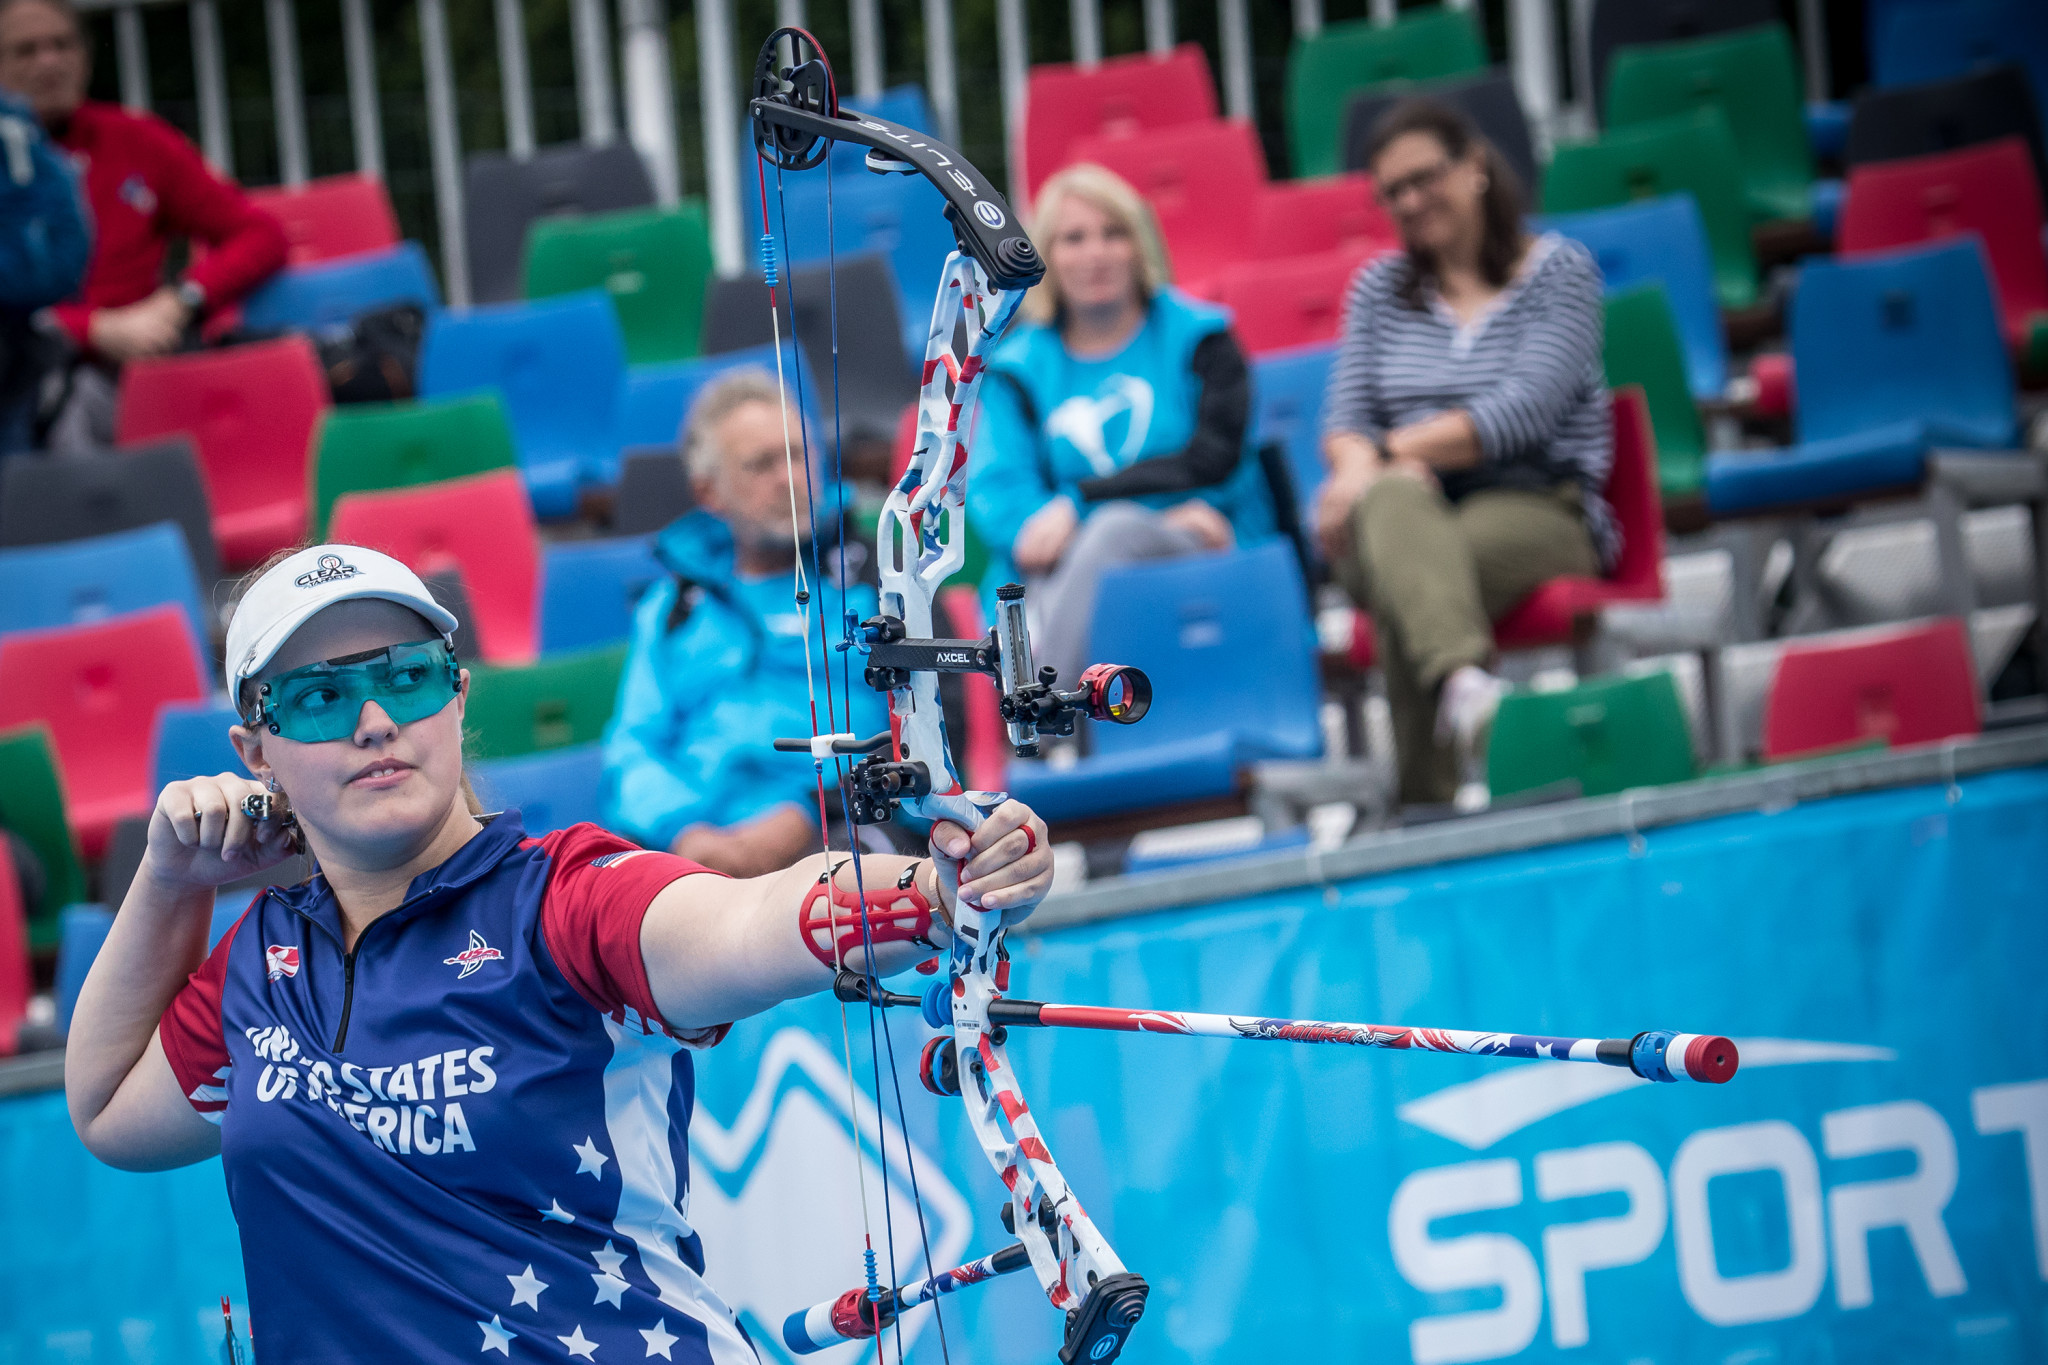 Paralympic champion and world number one shooter among competitors at World Archery Youth Championships